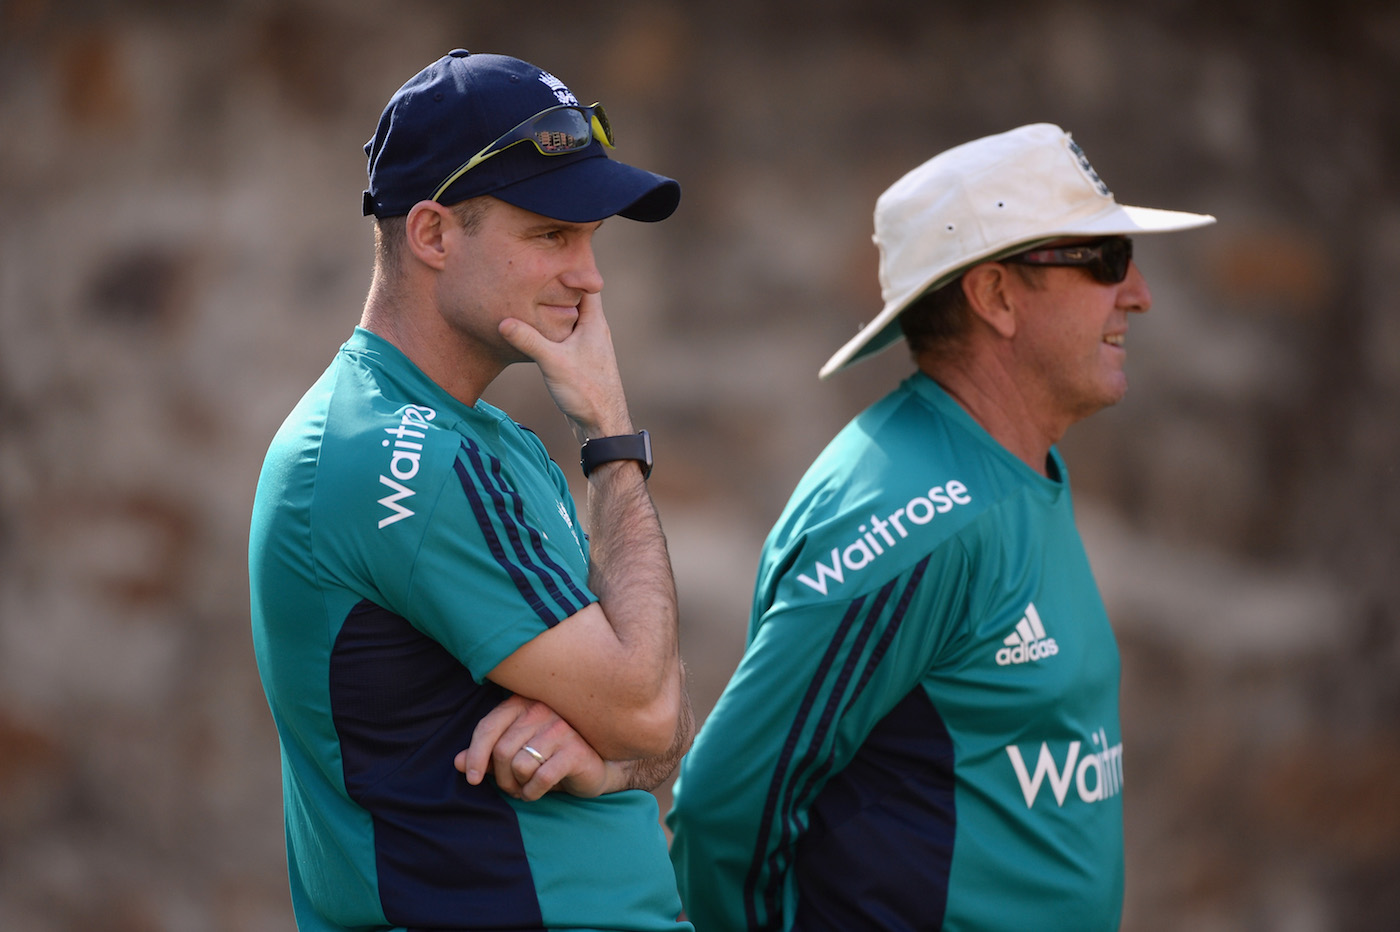 Andrew Strauss brought Bayliss in as coach following the 2015 World Cup and the tensions of the Peter Moores era